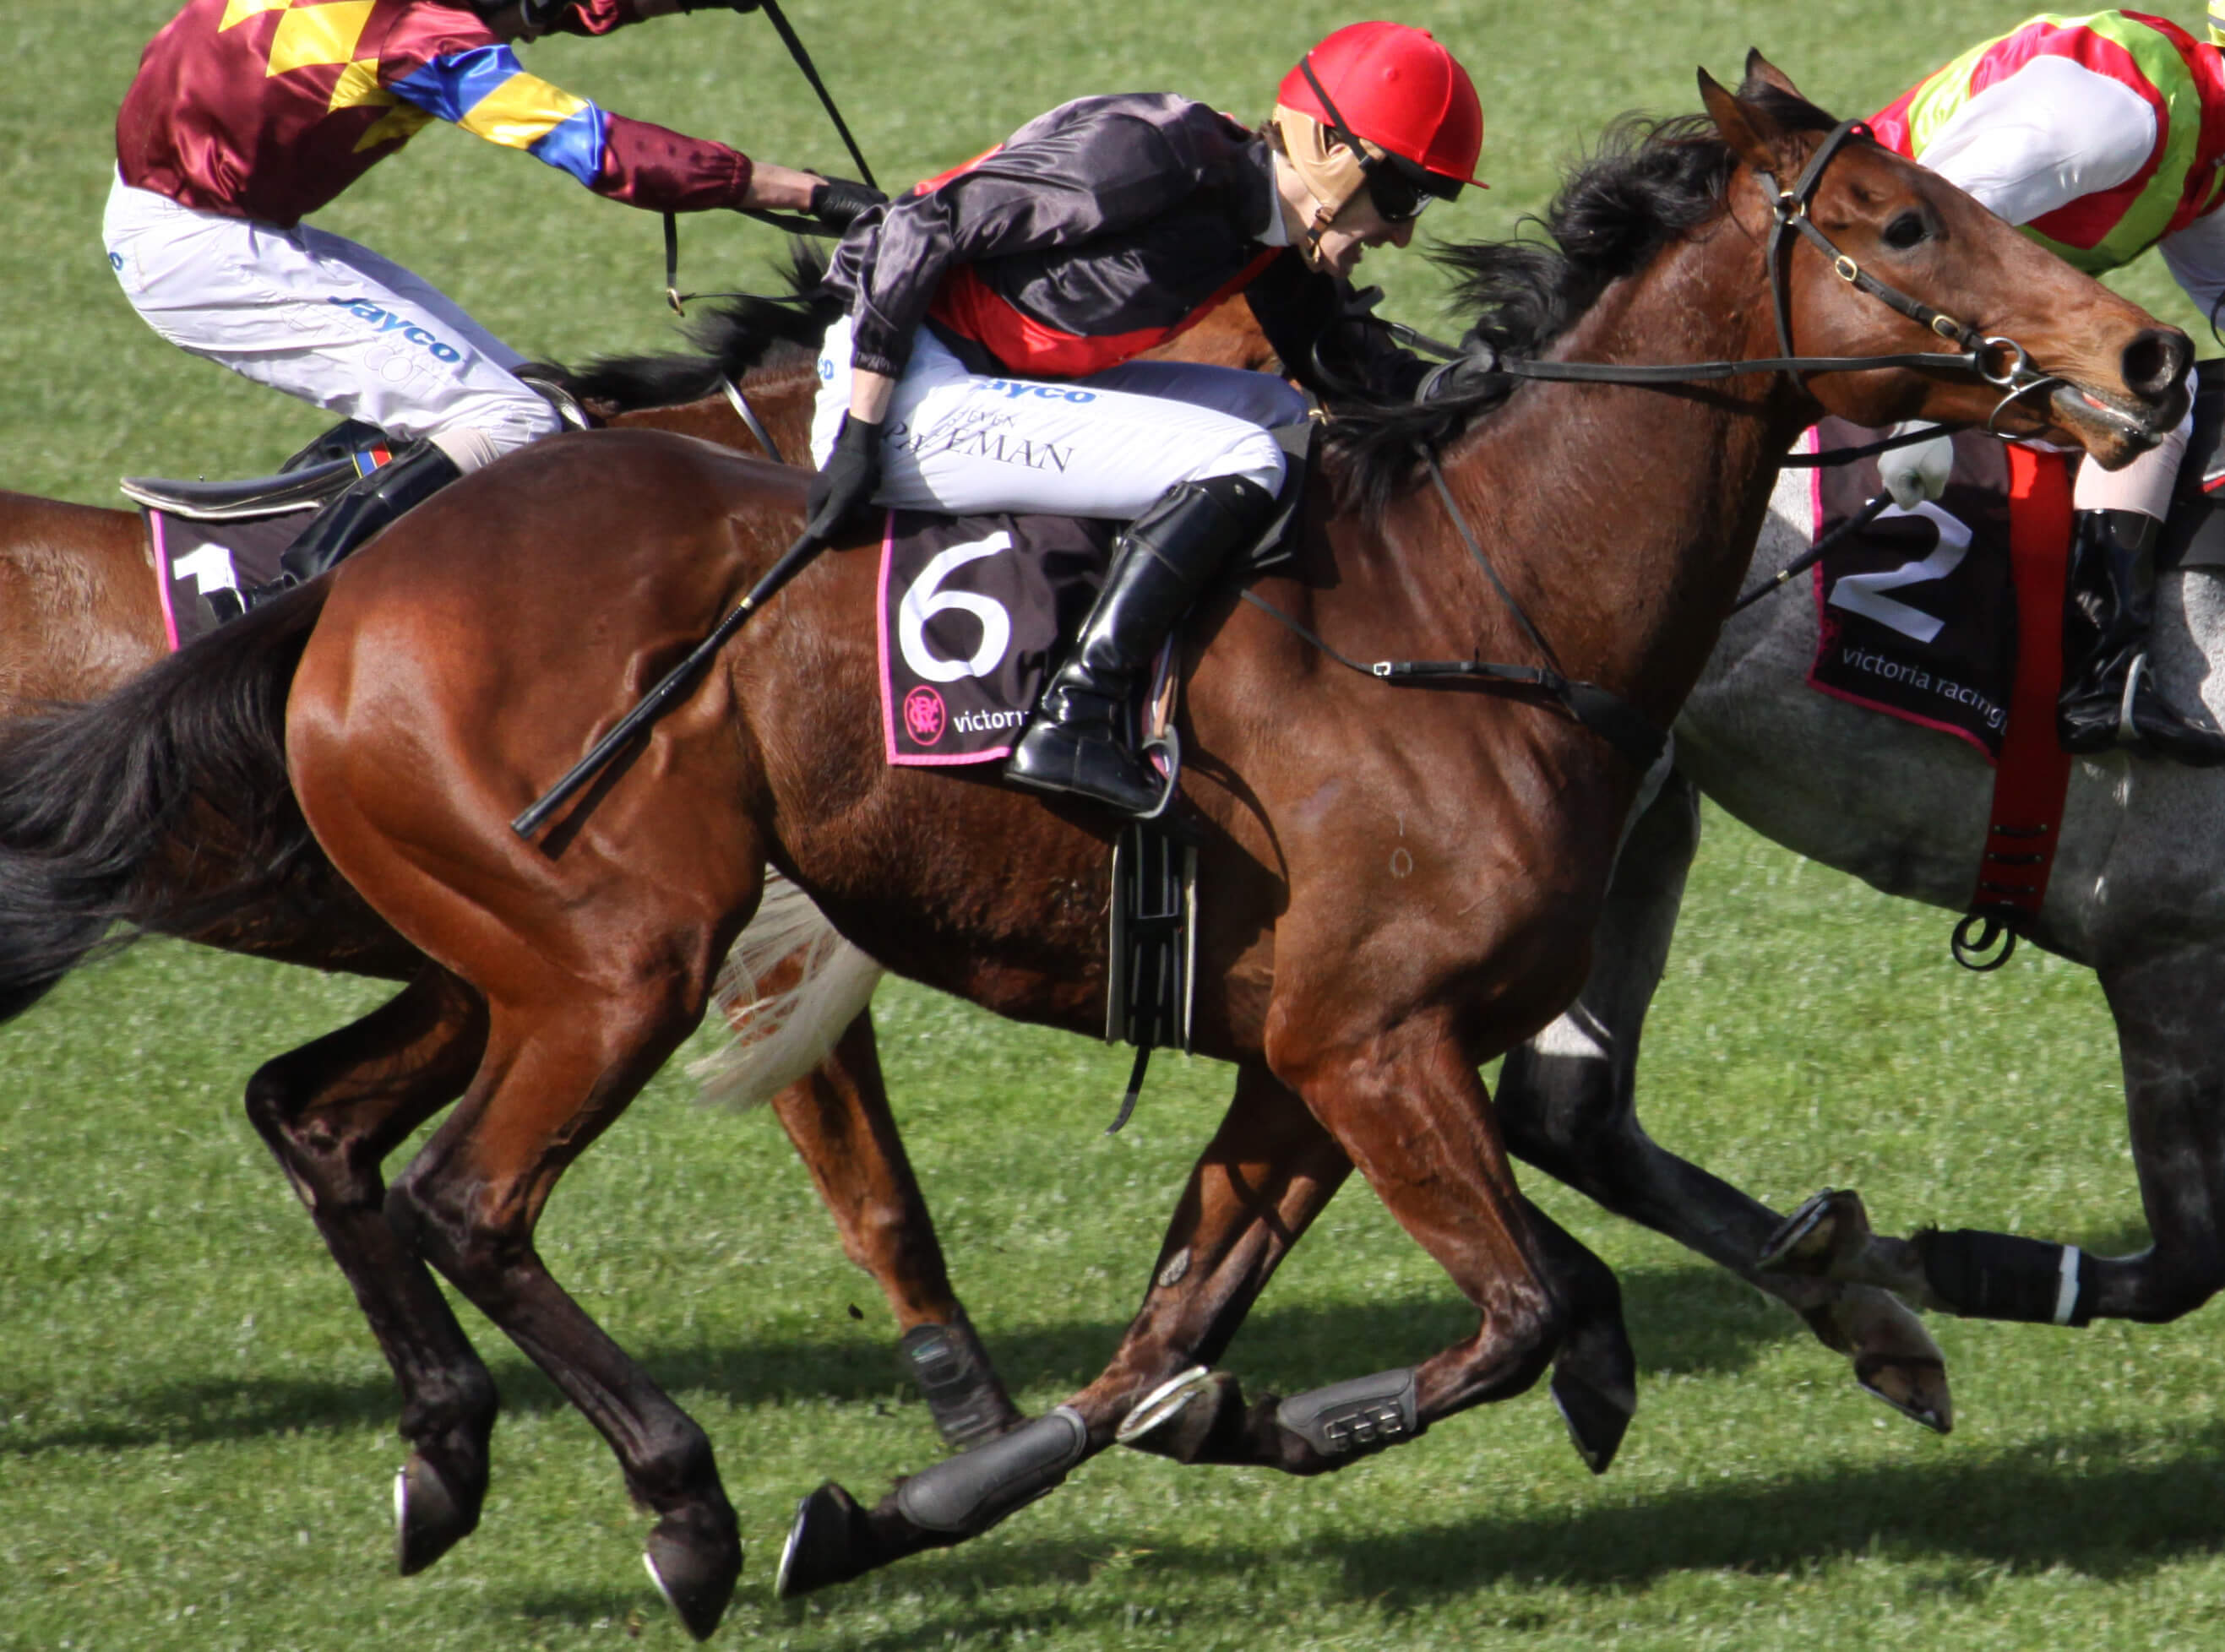 Tips on Winning Big Money in Thoroughbred Races